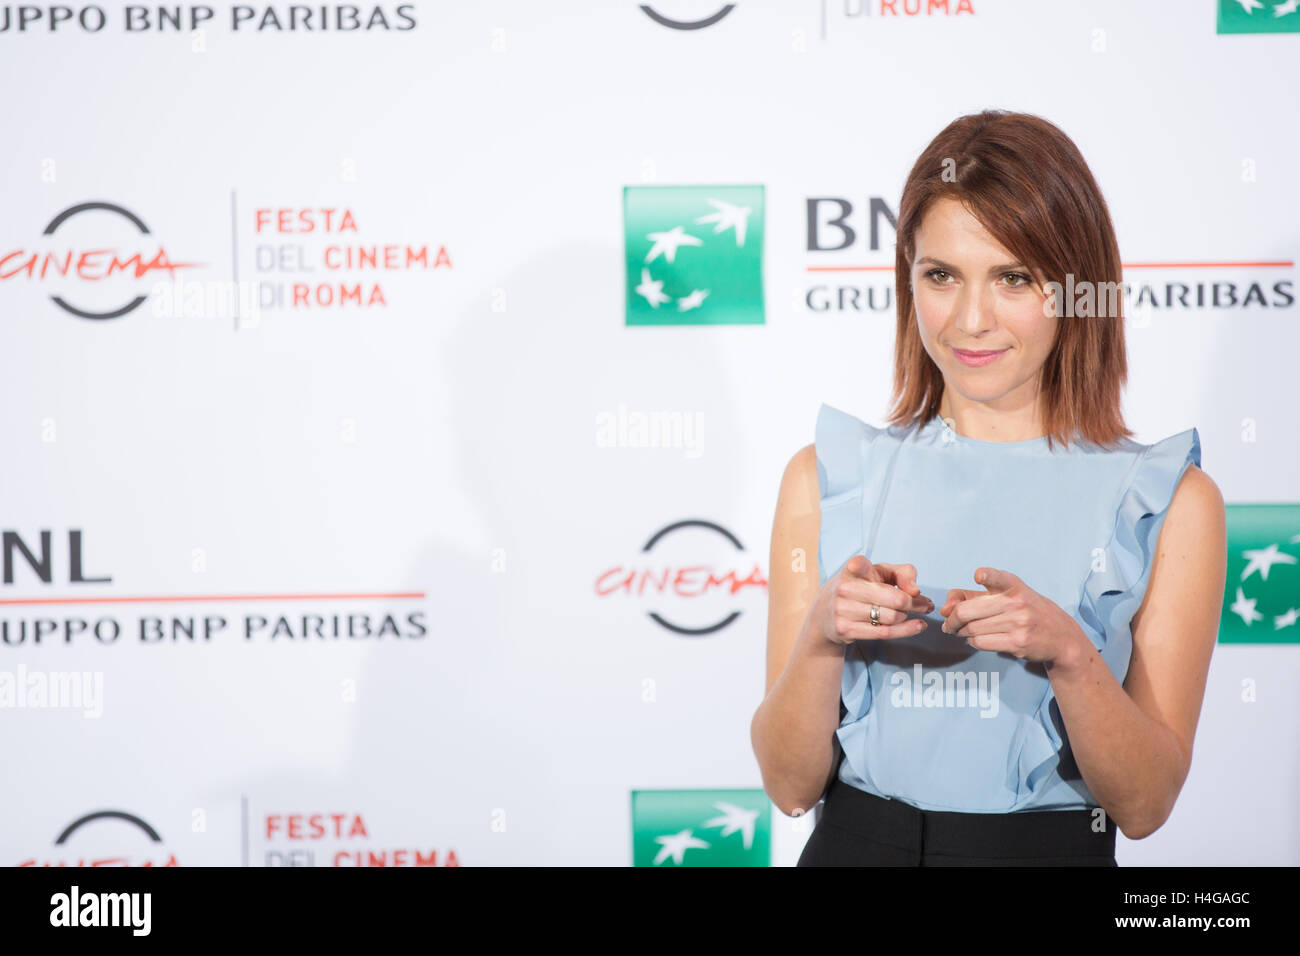 Rome, Italy. 15th October 2016. Isabella Ragonese at photocall Credit: Luigi de Pompeis/Alamy Live News - Stock Image